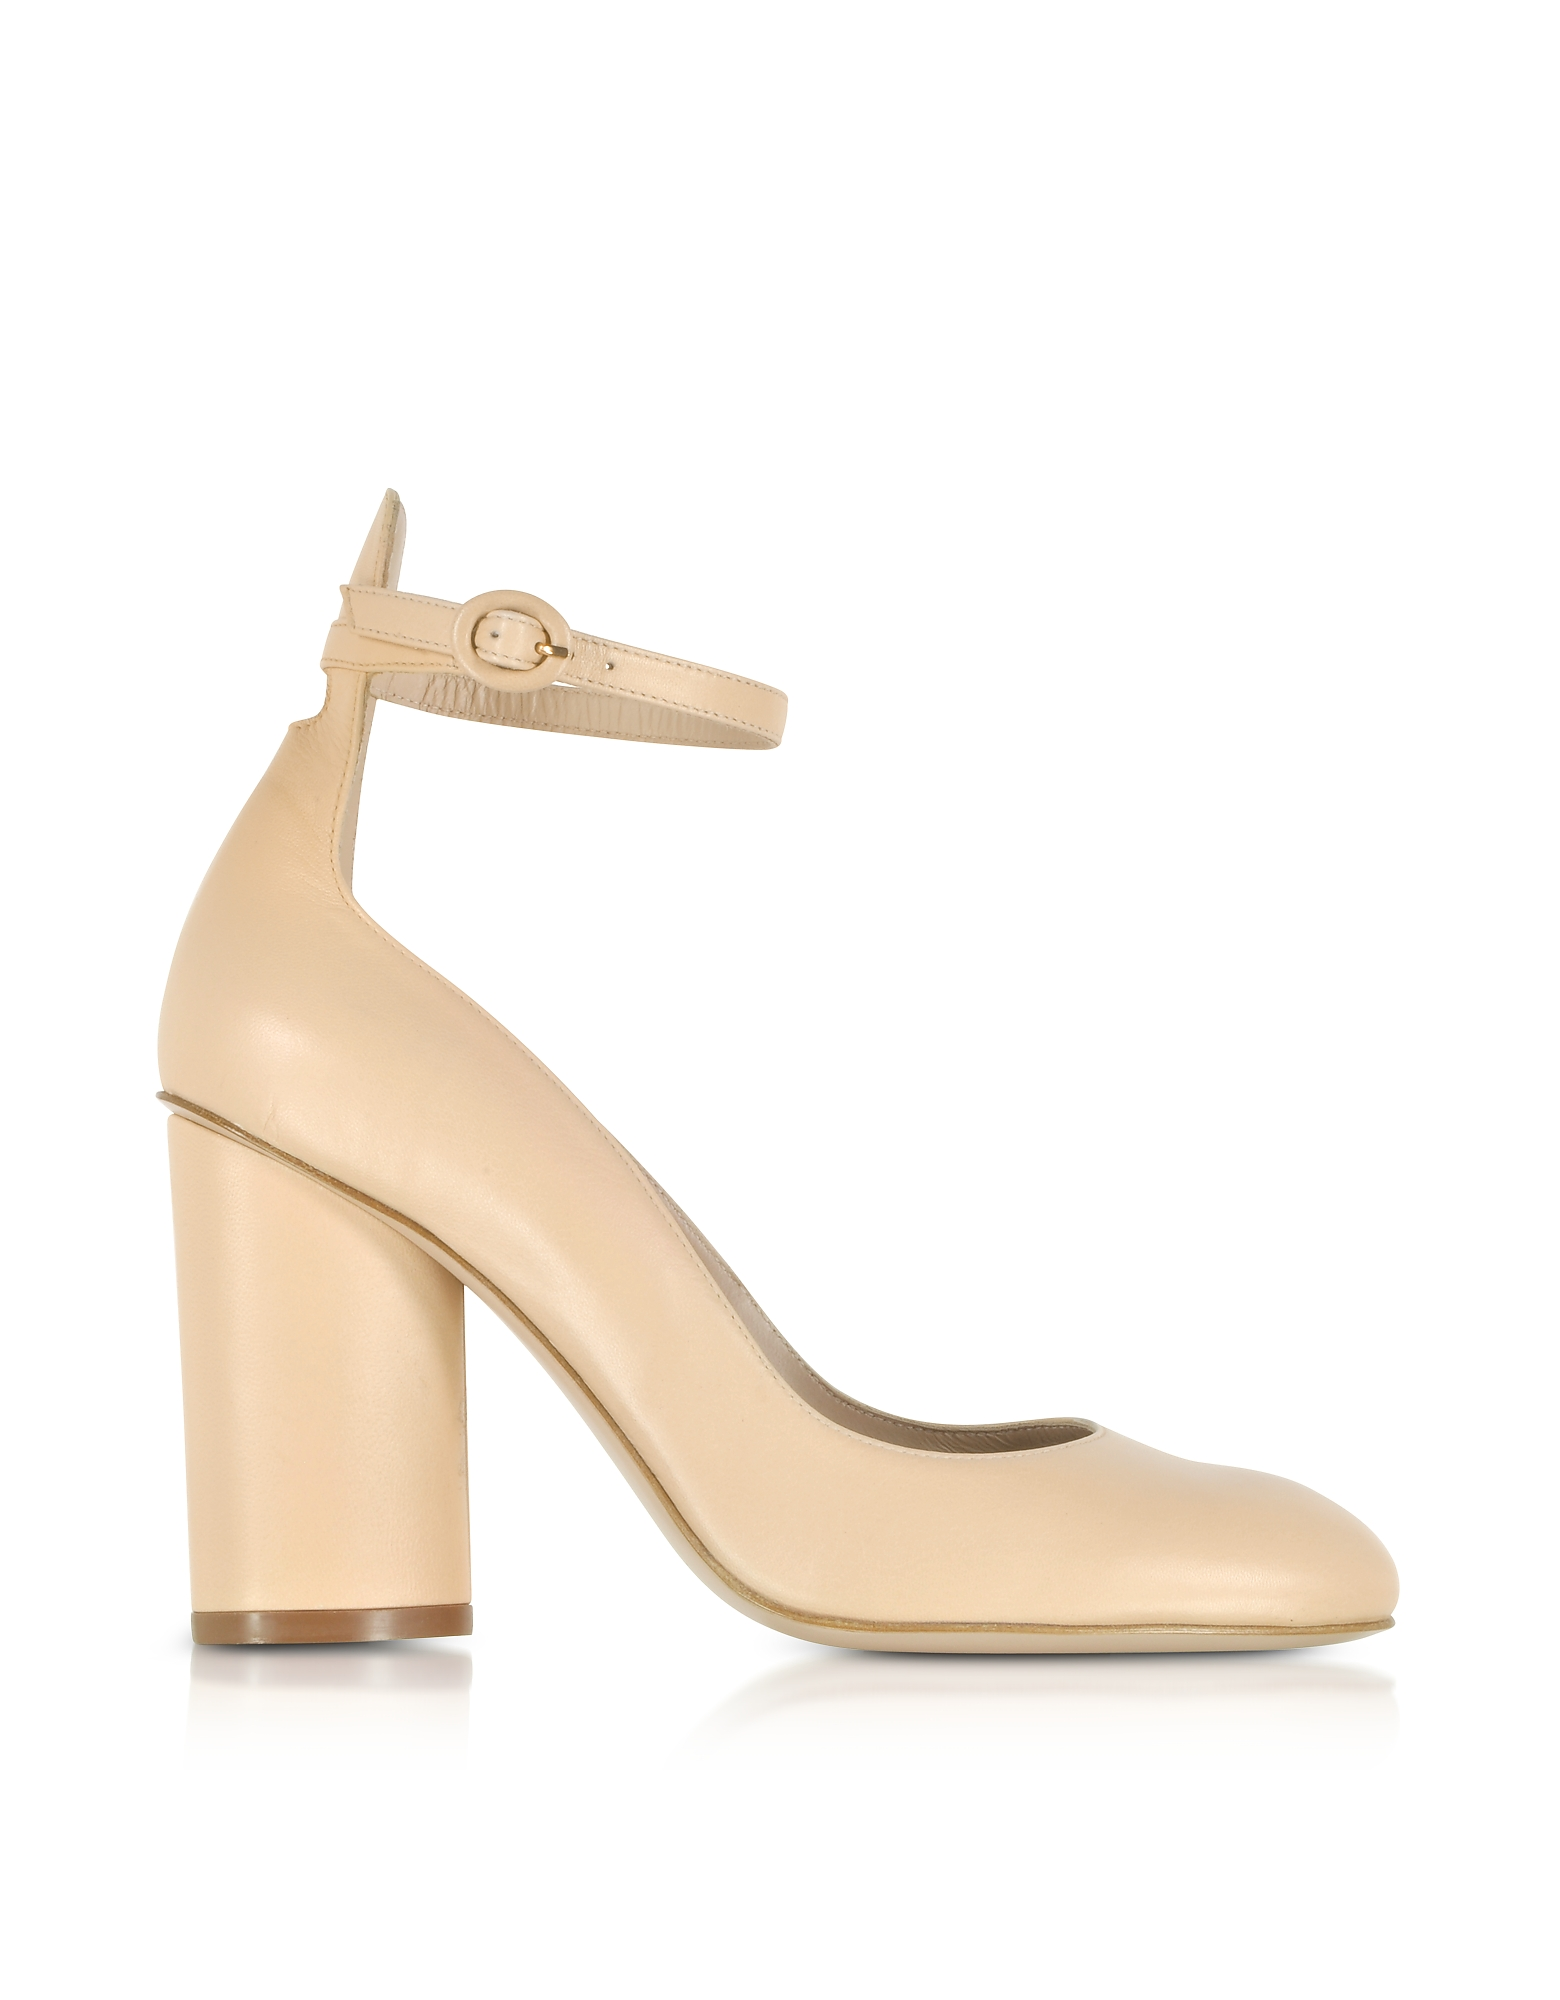 Stuart Weitzman Shoes, Pasadena Blush Leather Heel Pumps